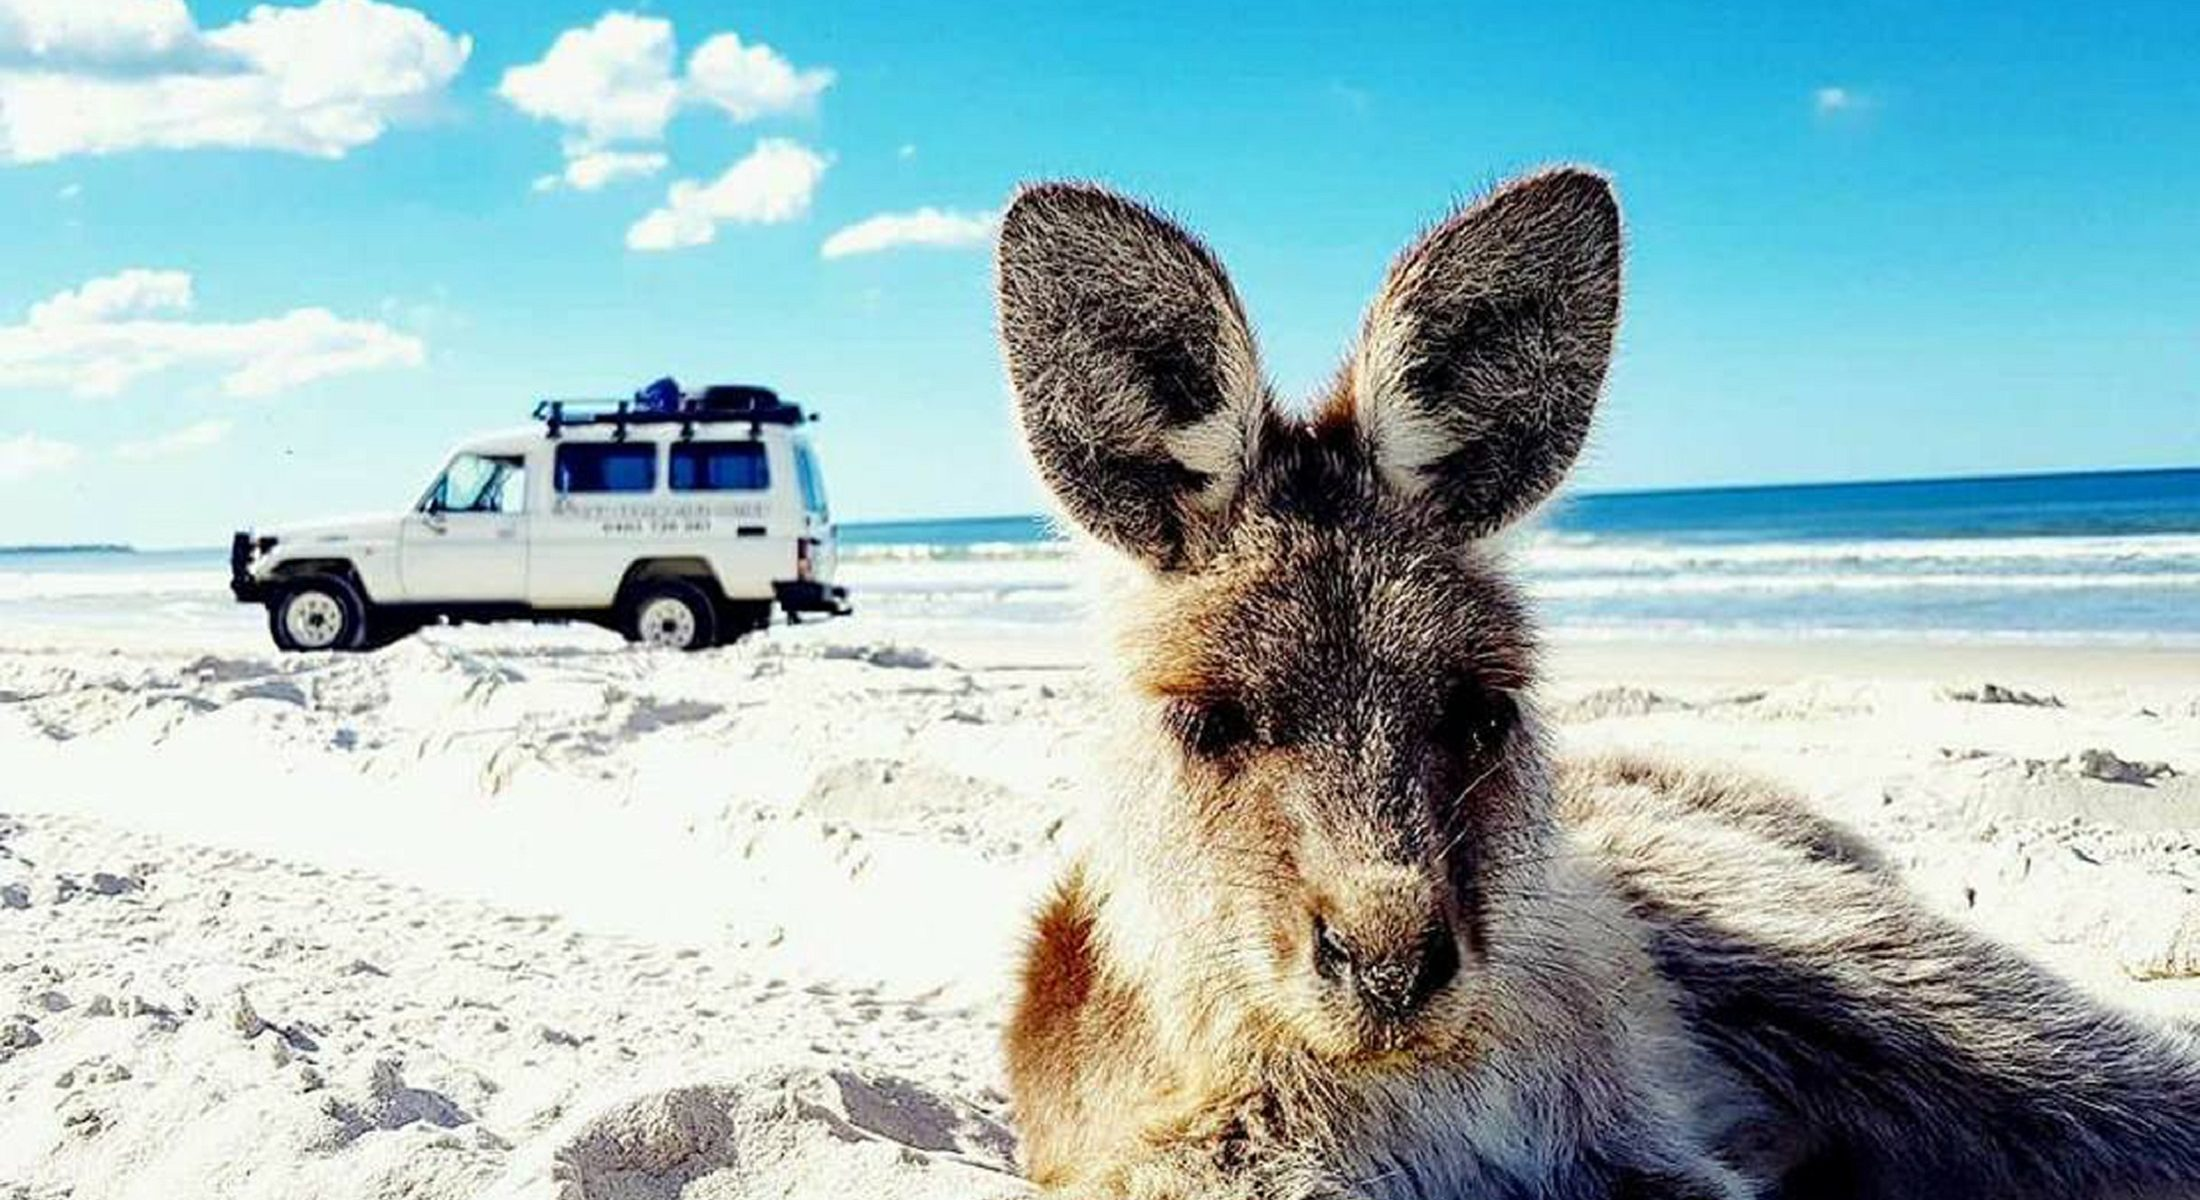 Gday Adventure Tours Bribie Island Kangaroo On Beach Moreton Bay Region